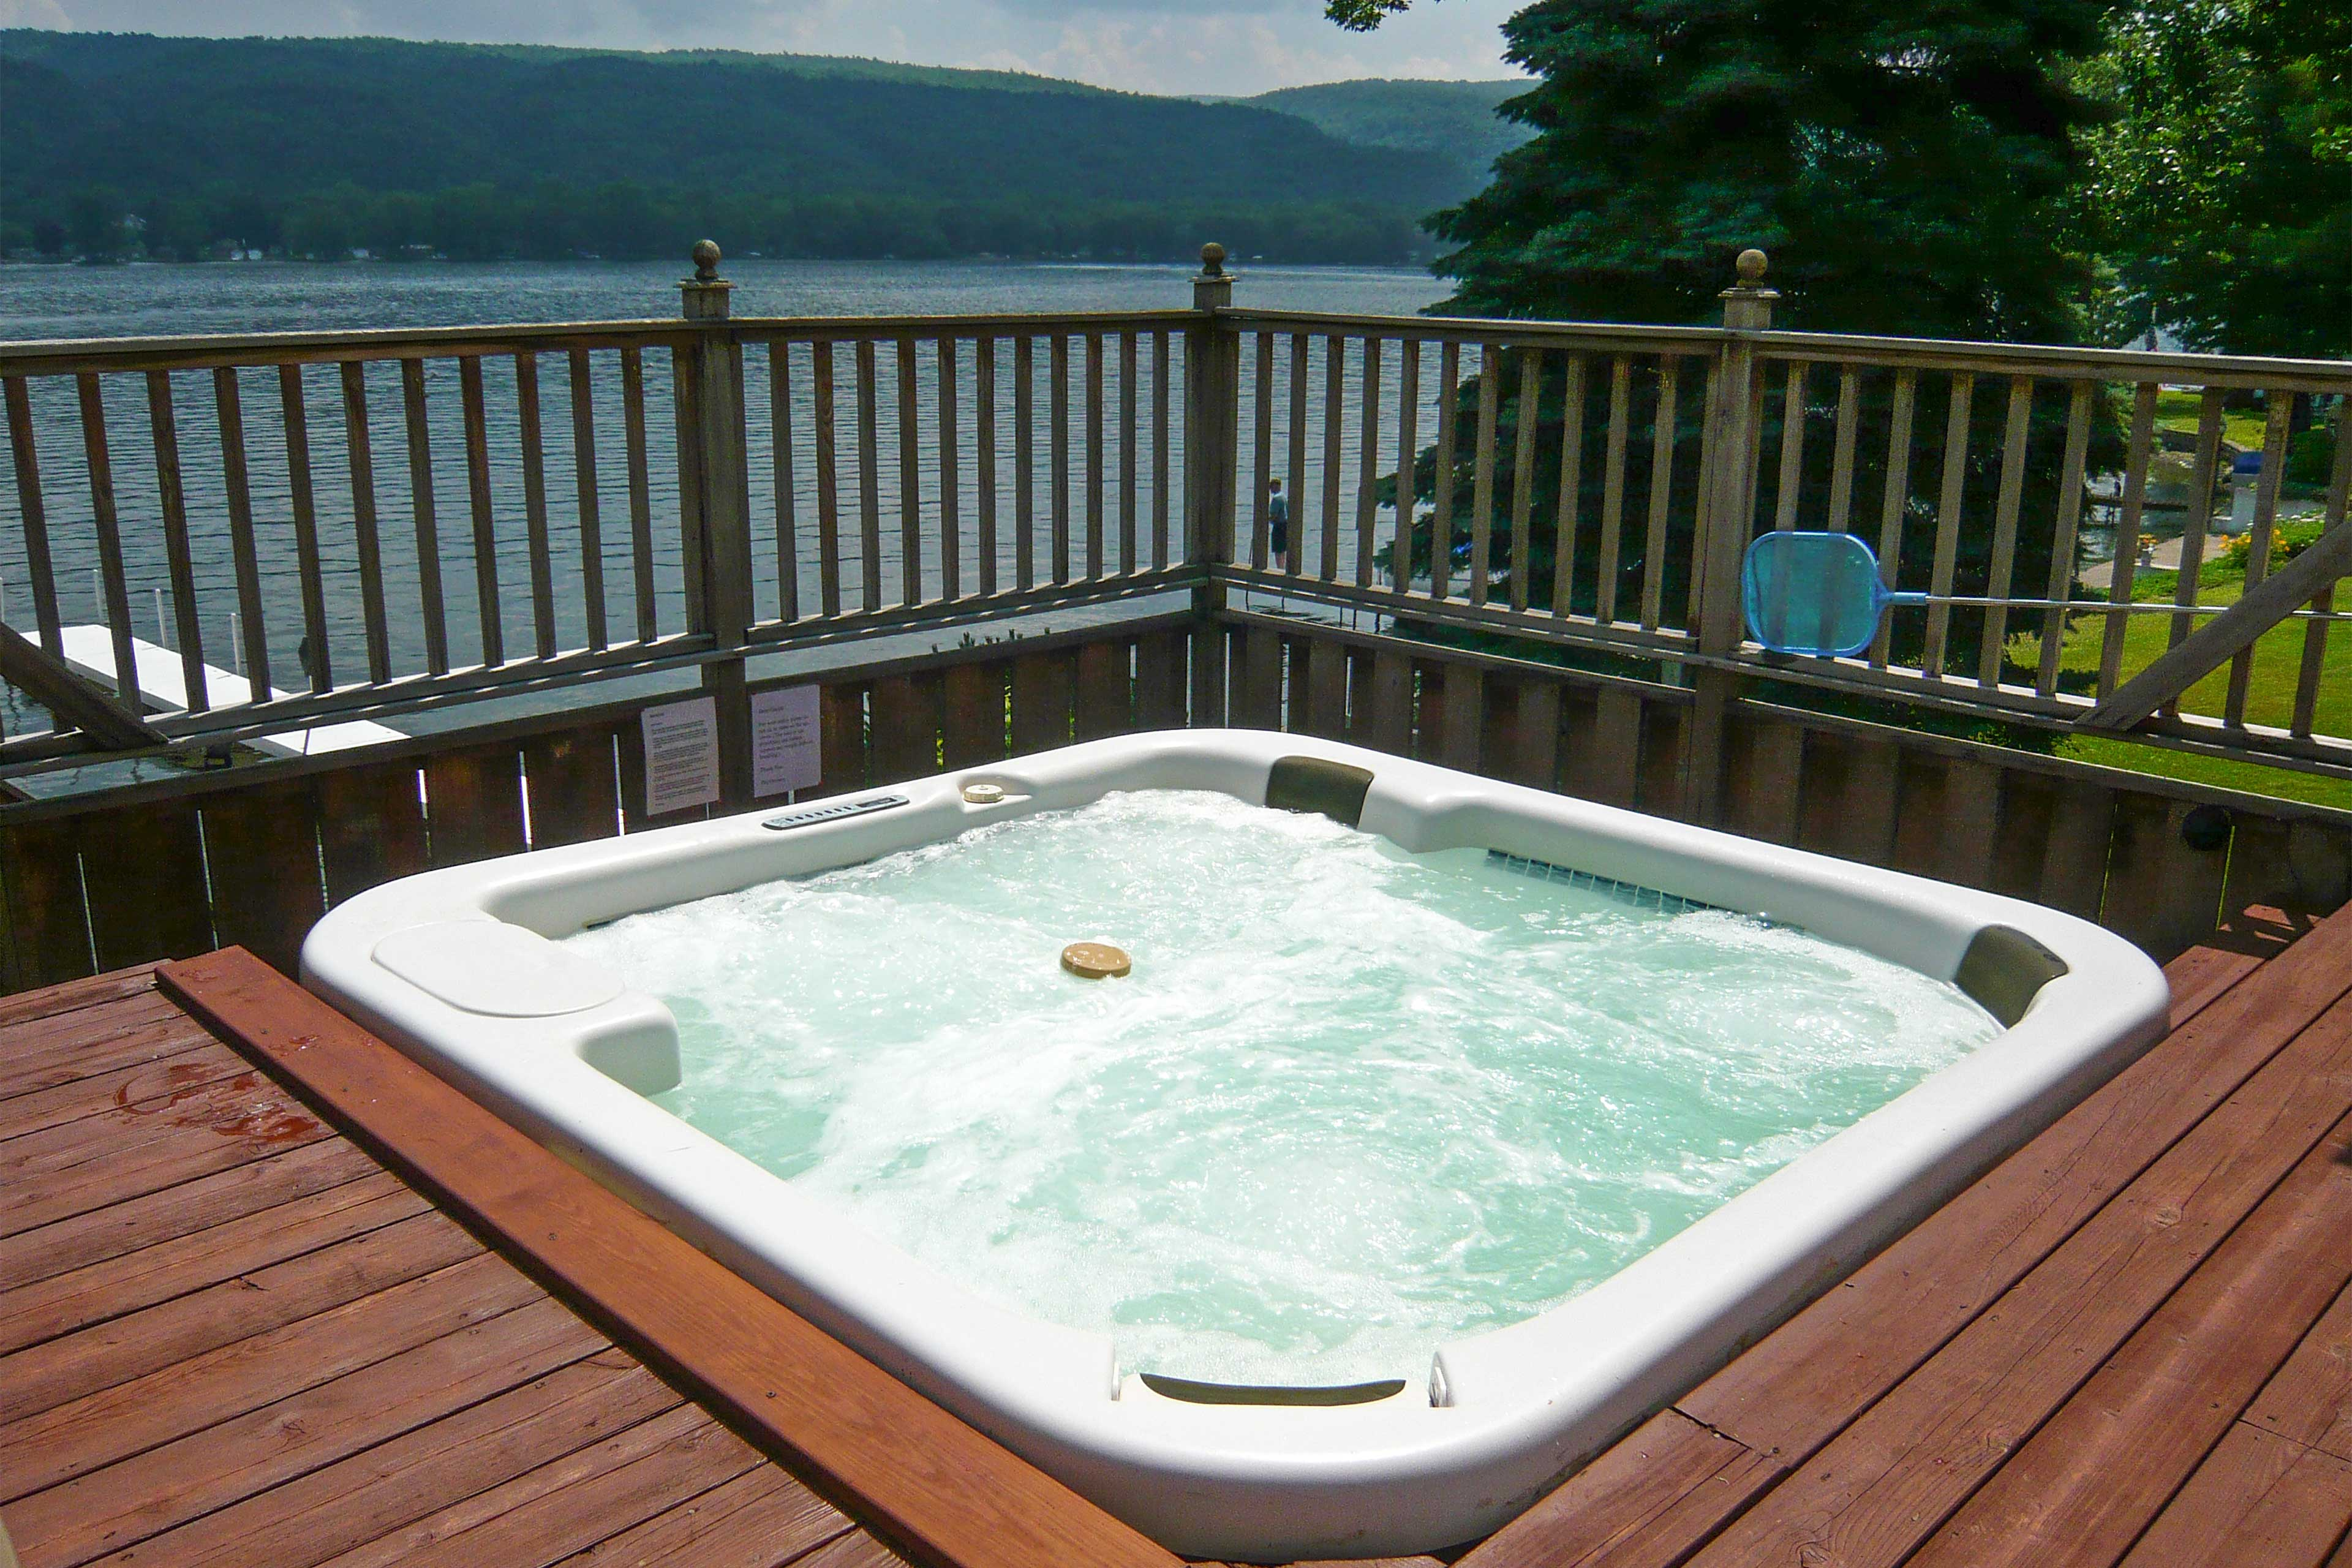 Soak in views of Honeoye Lake in your backyard from your private hot tub!